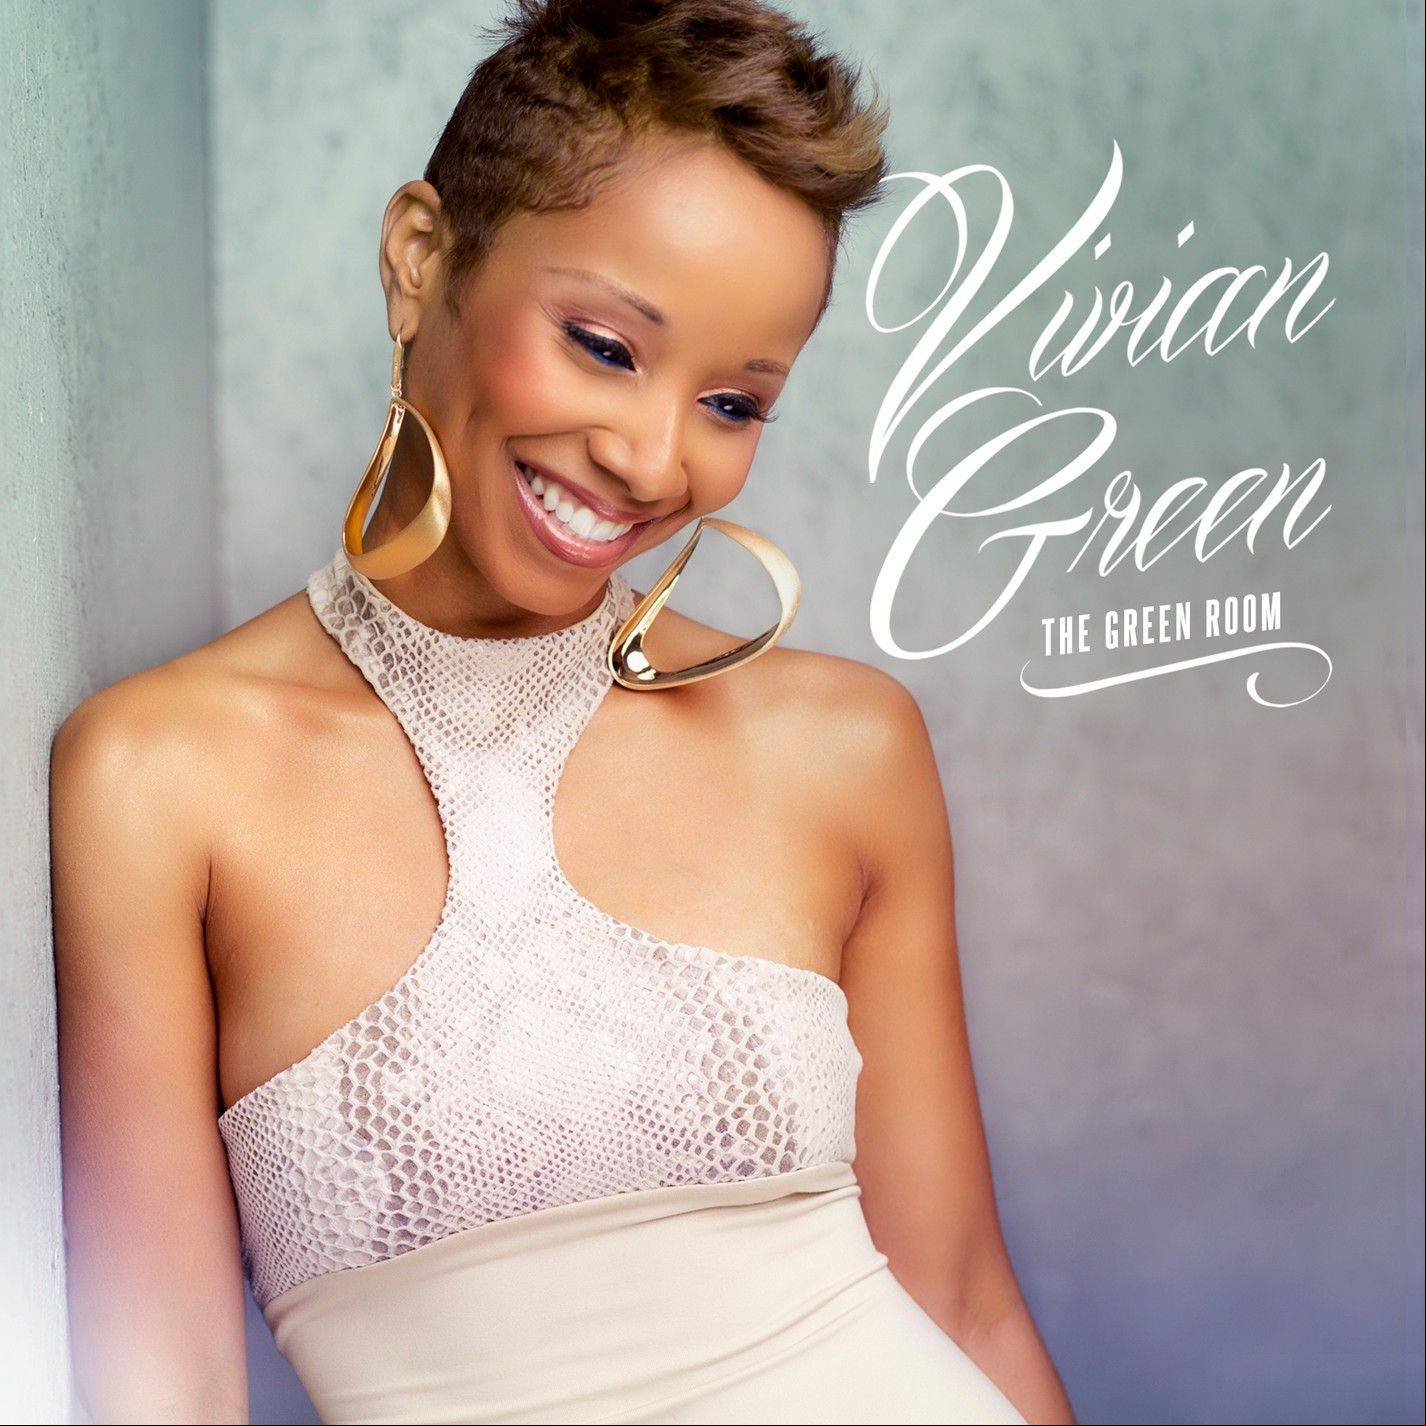 Vivian Green�s �The Green Room�